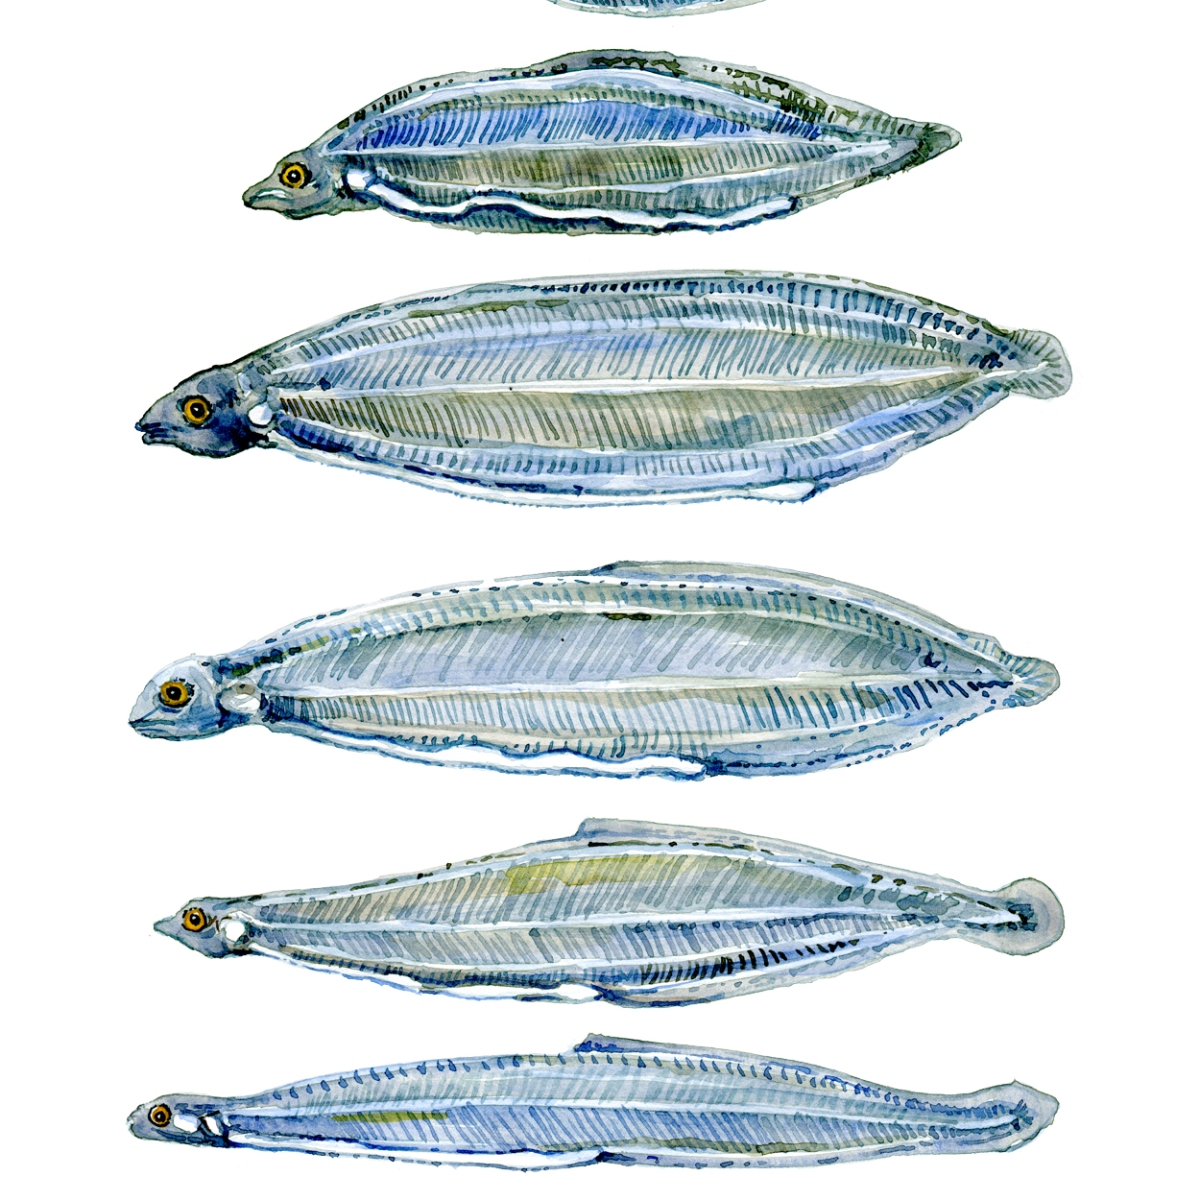 Larvae of the European Eel - watercolor painting